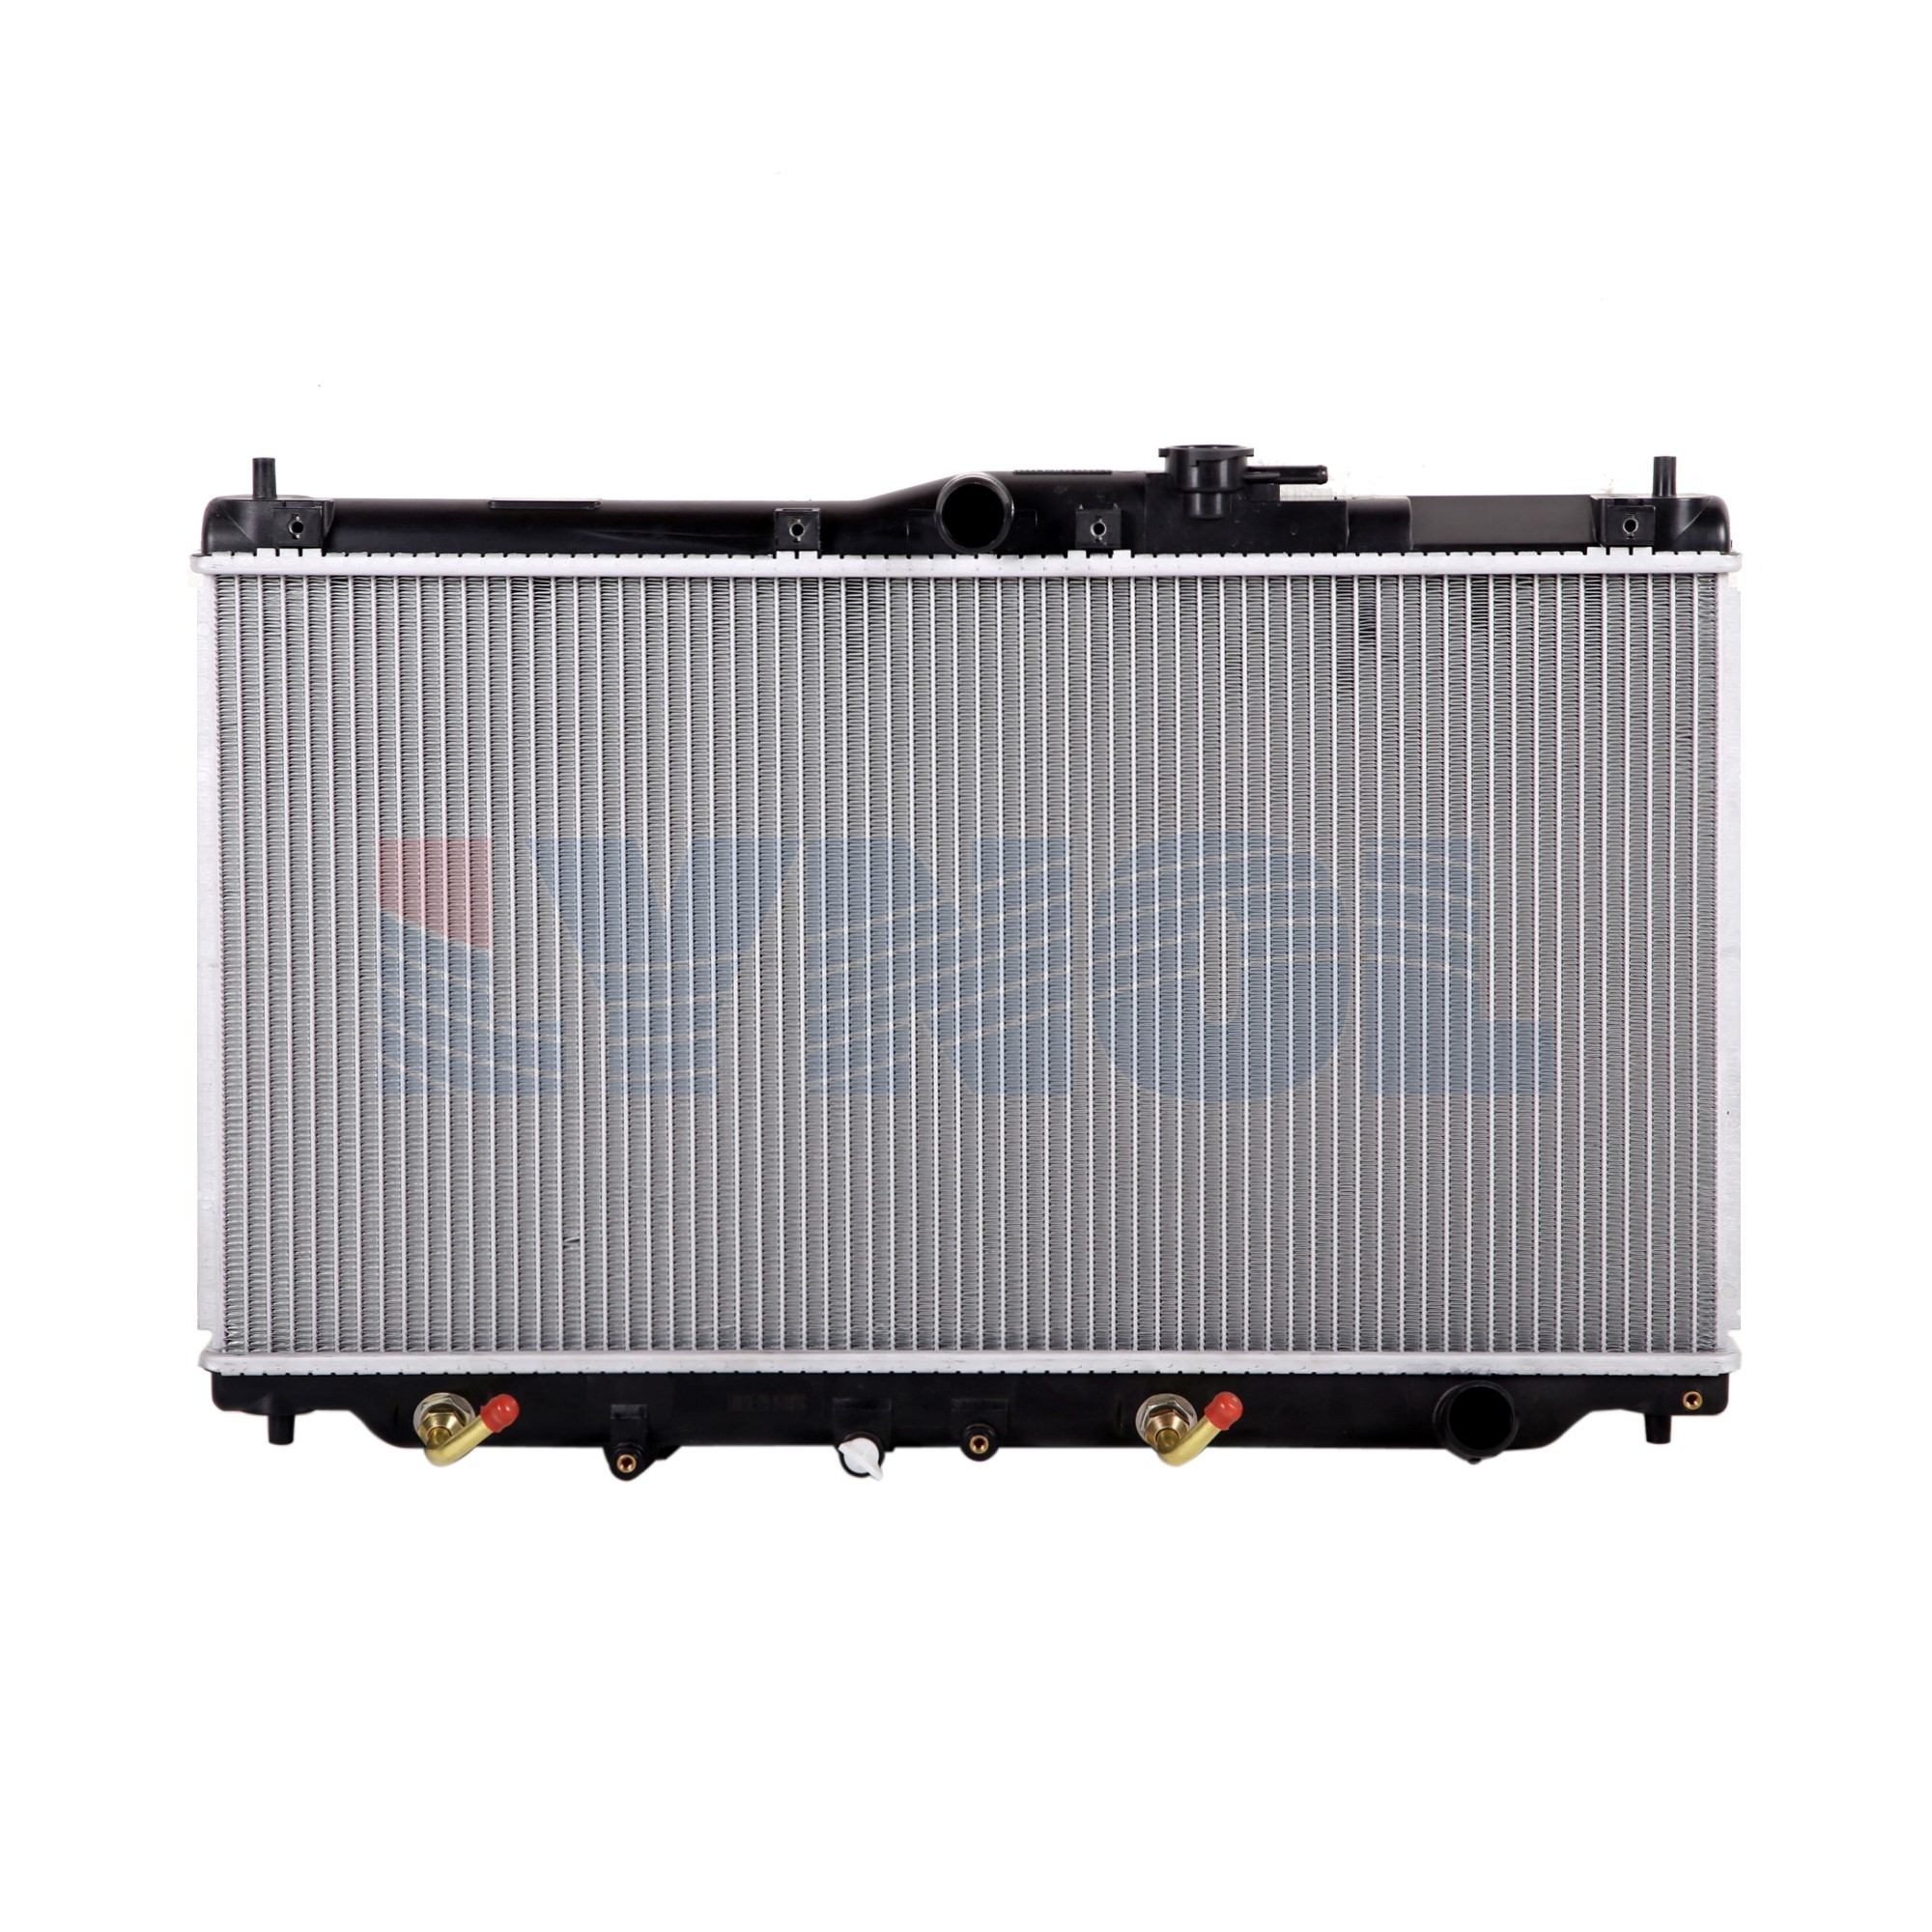 LR0019E - RADIATOR  - 90-93 ACCORD / PRELUDE